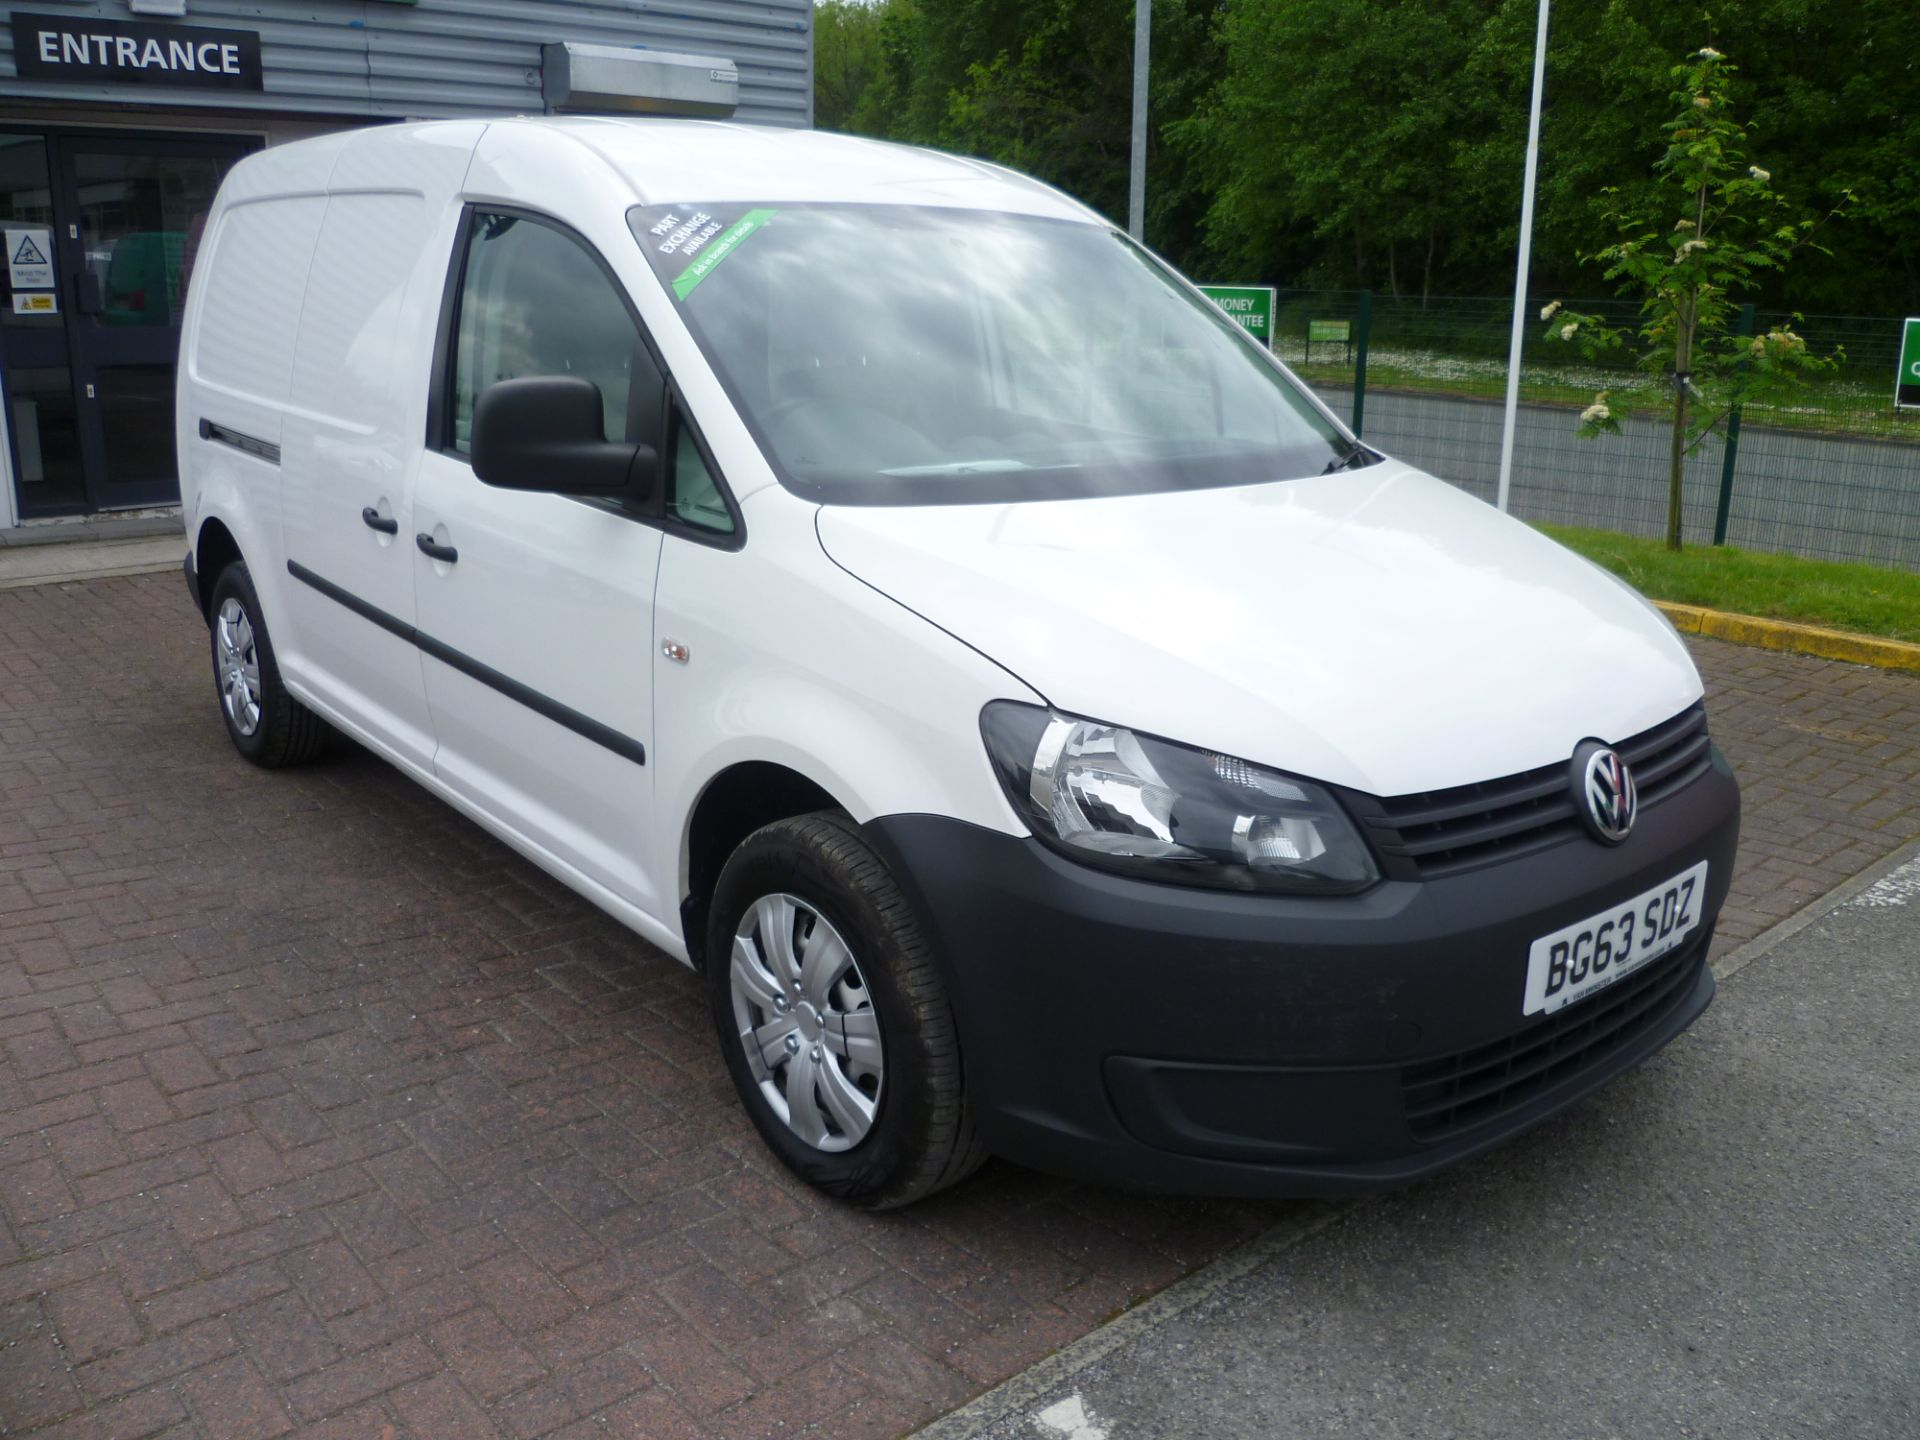 2014 Volkswagen Caddy 1.6 BLUEMOTION 102PS STARTLINE EURO 5 (BG63SDZ)